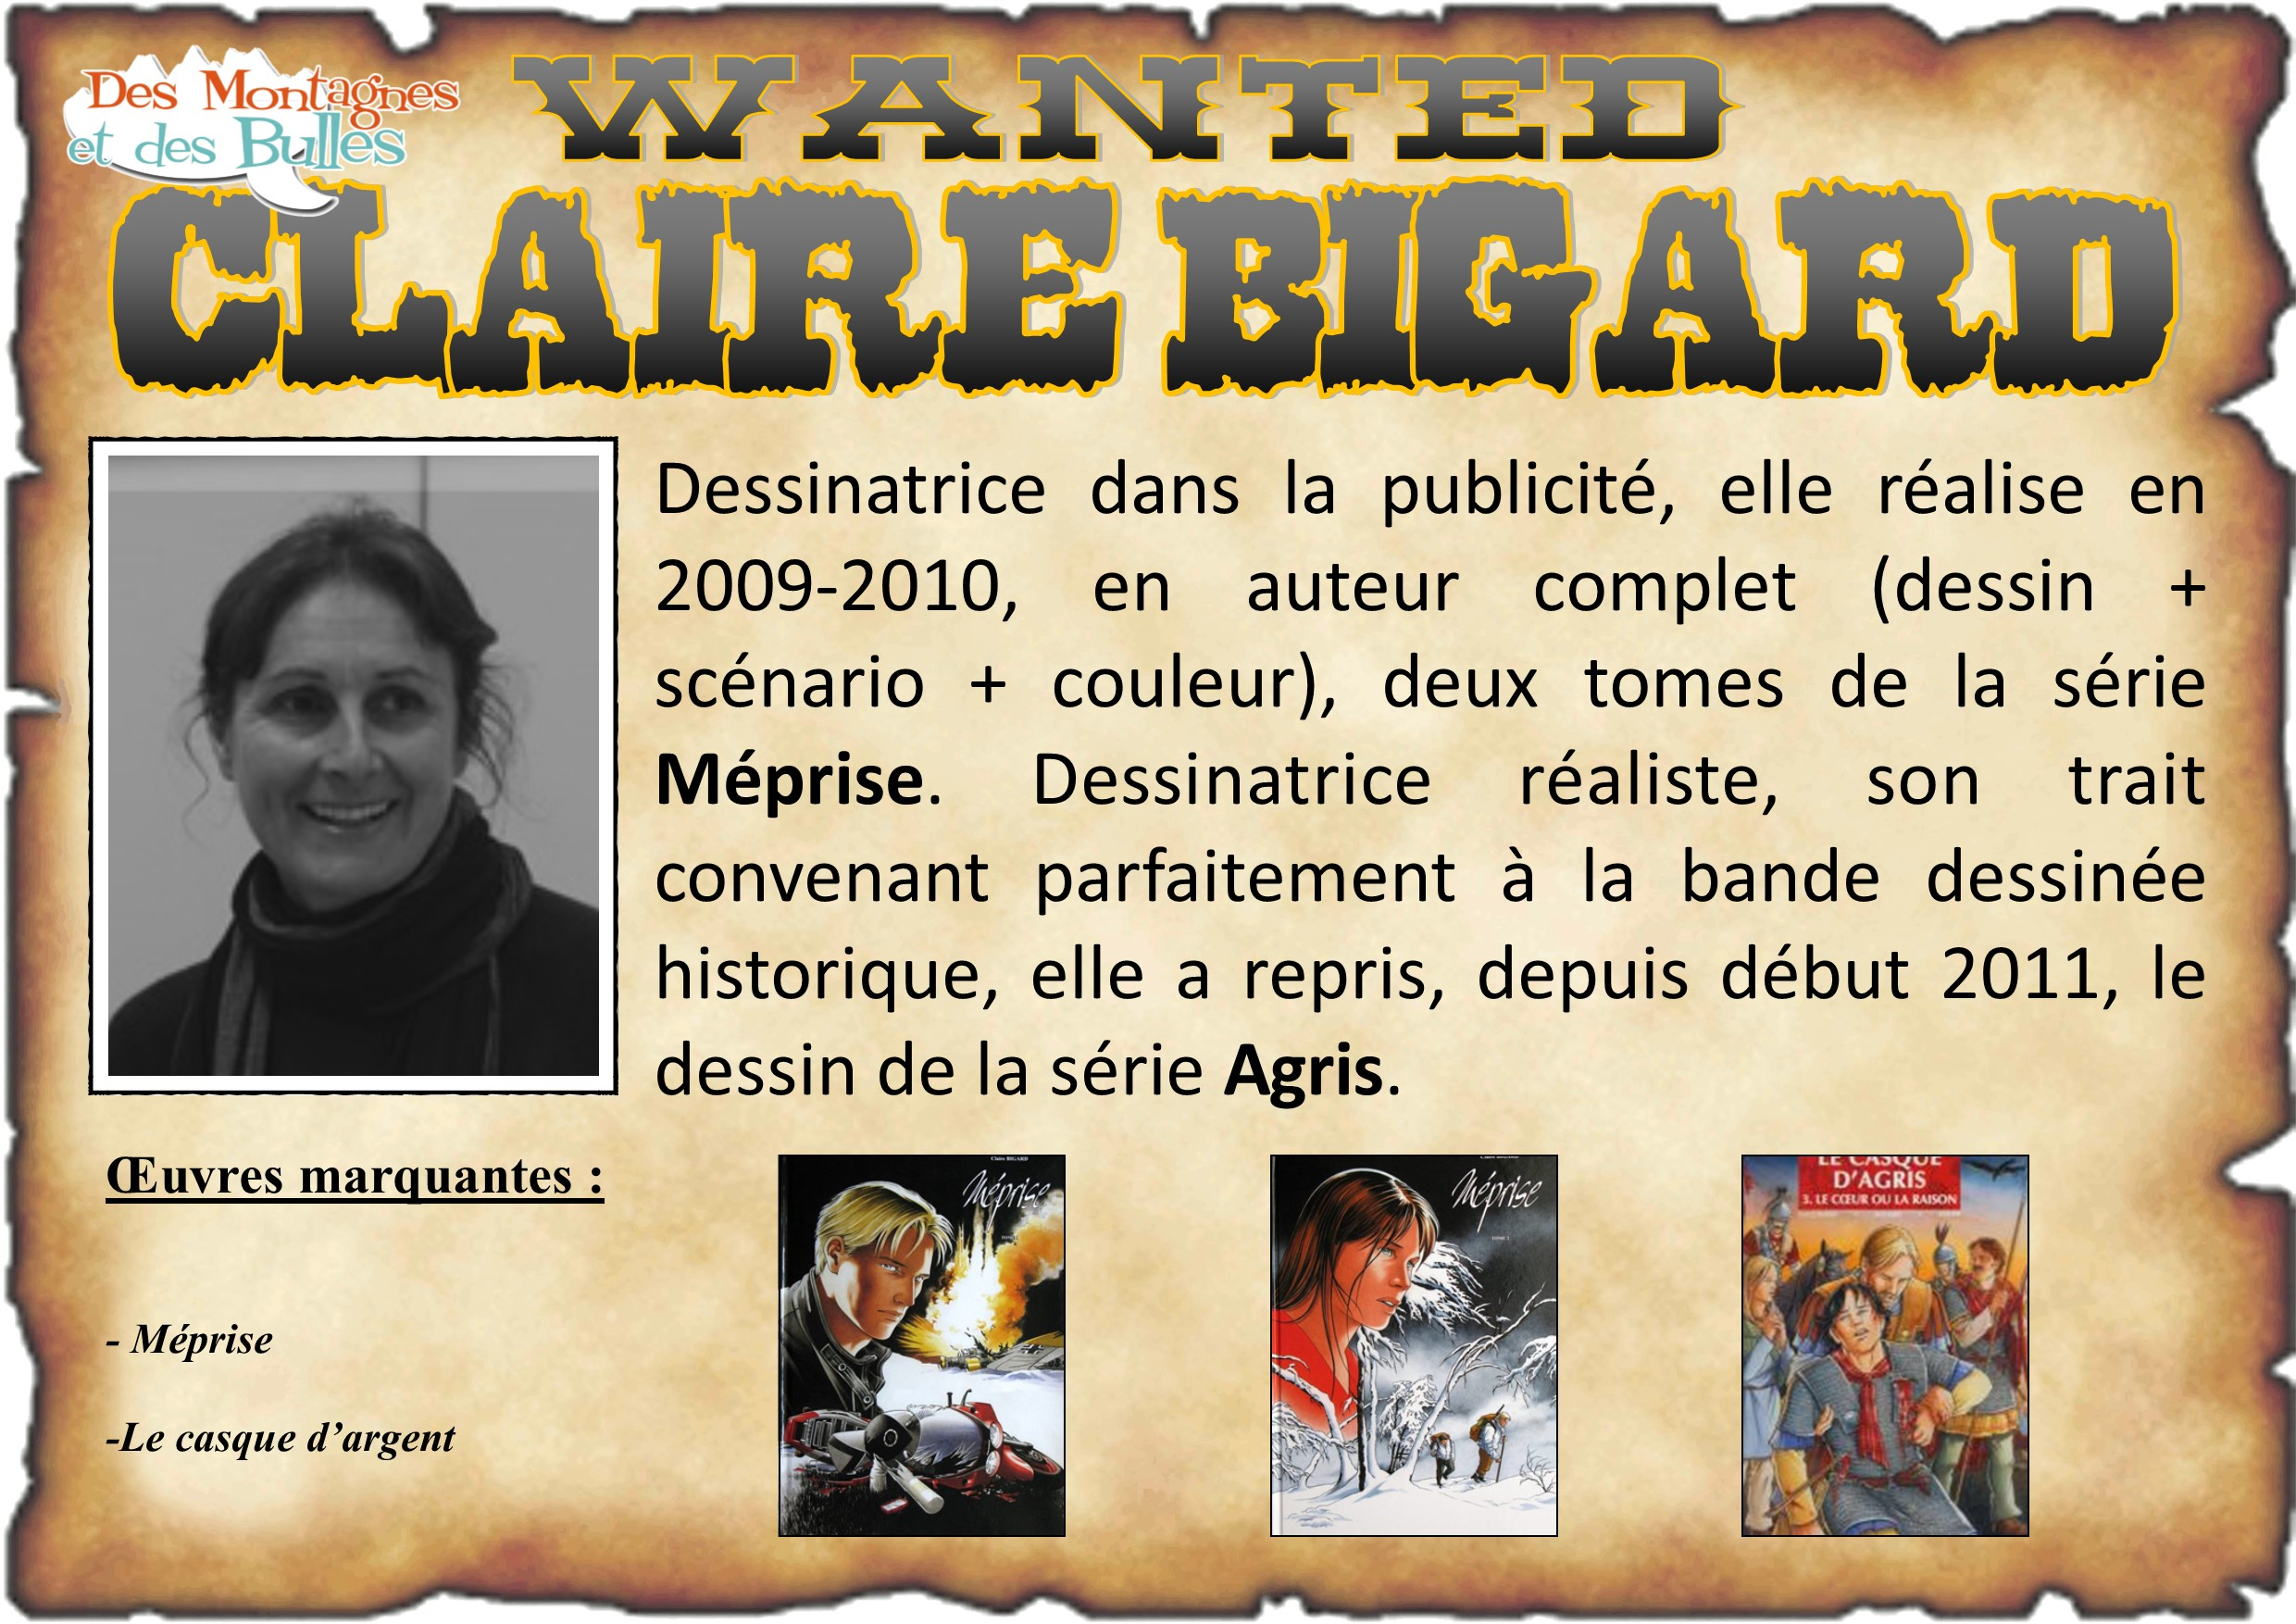 Claire Bigard